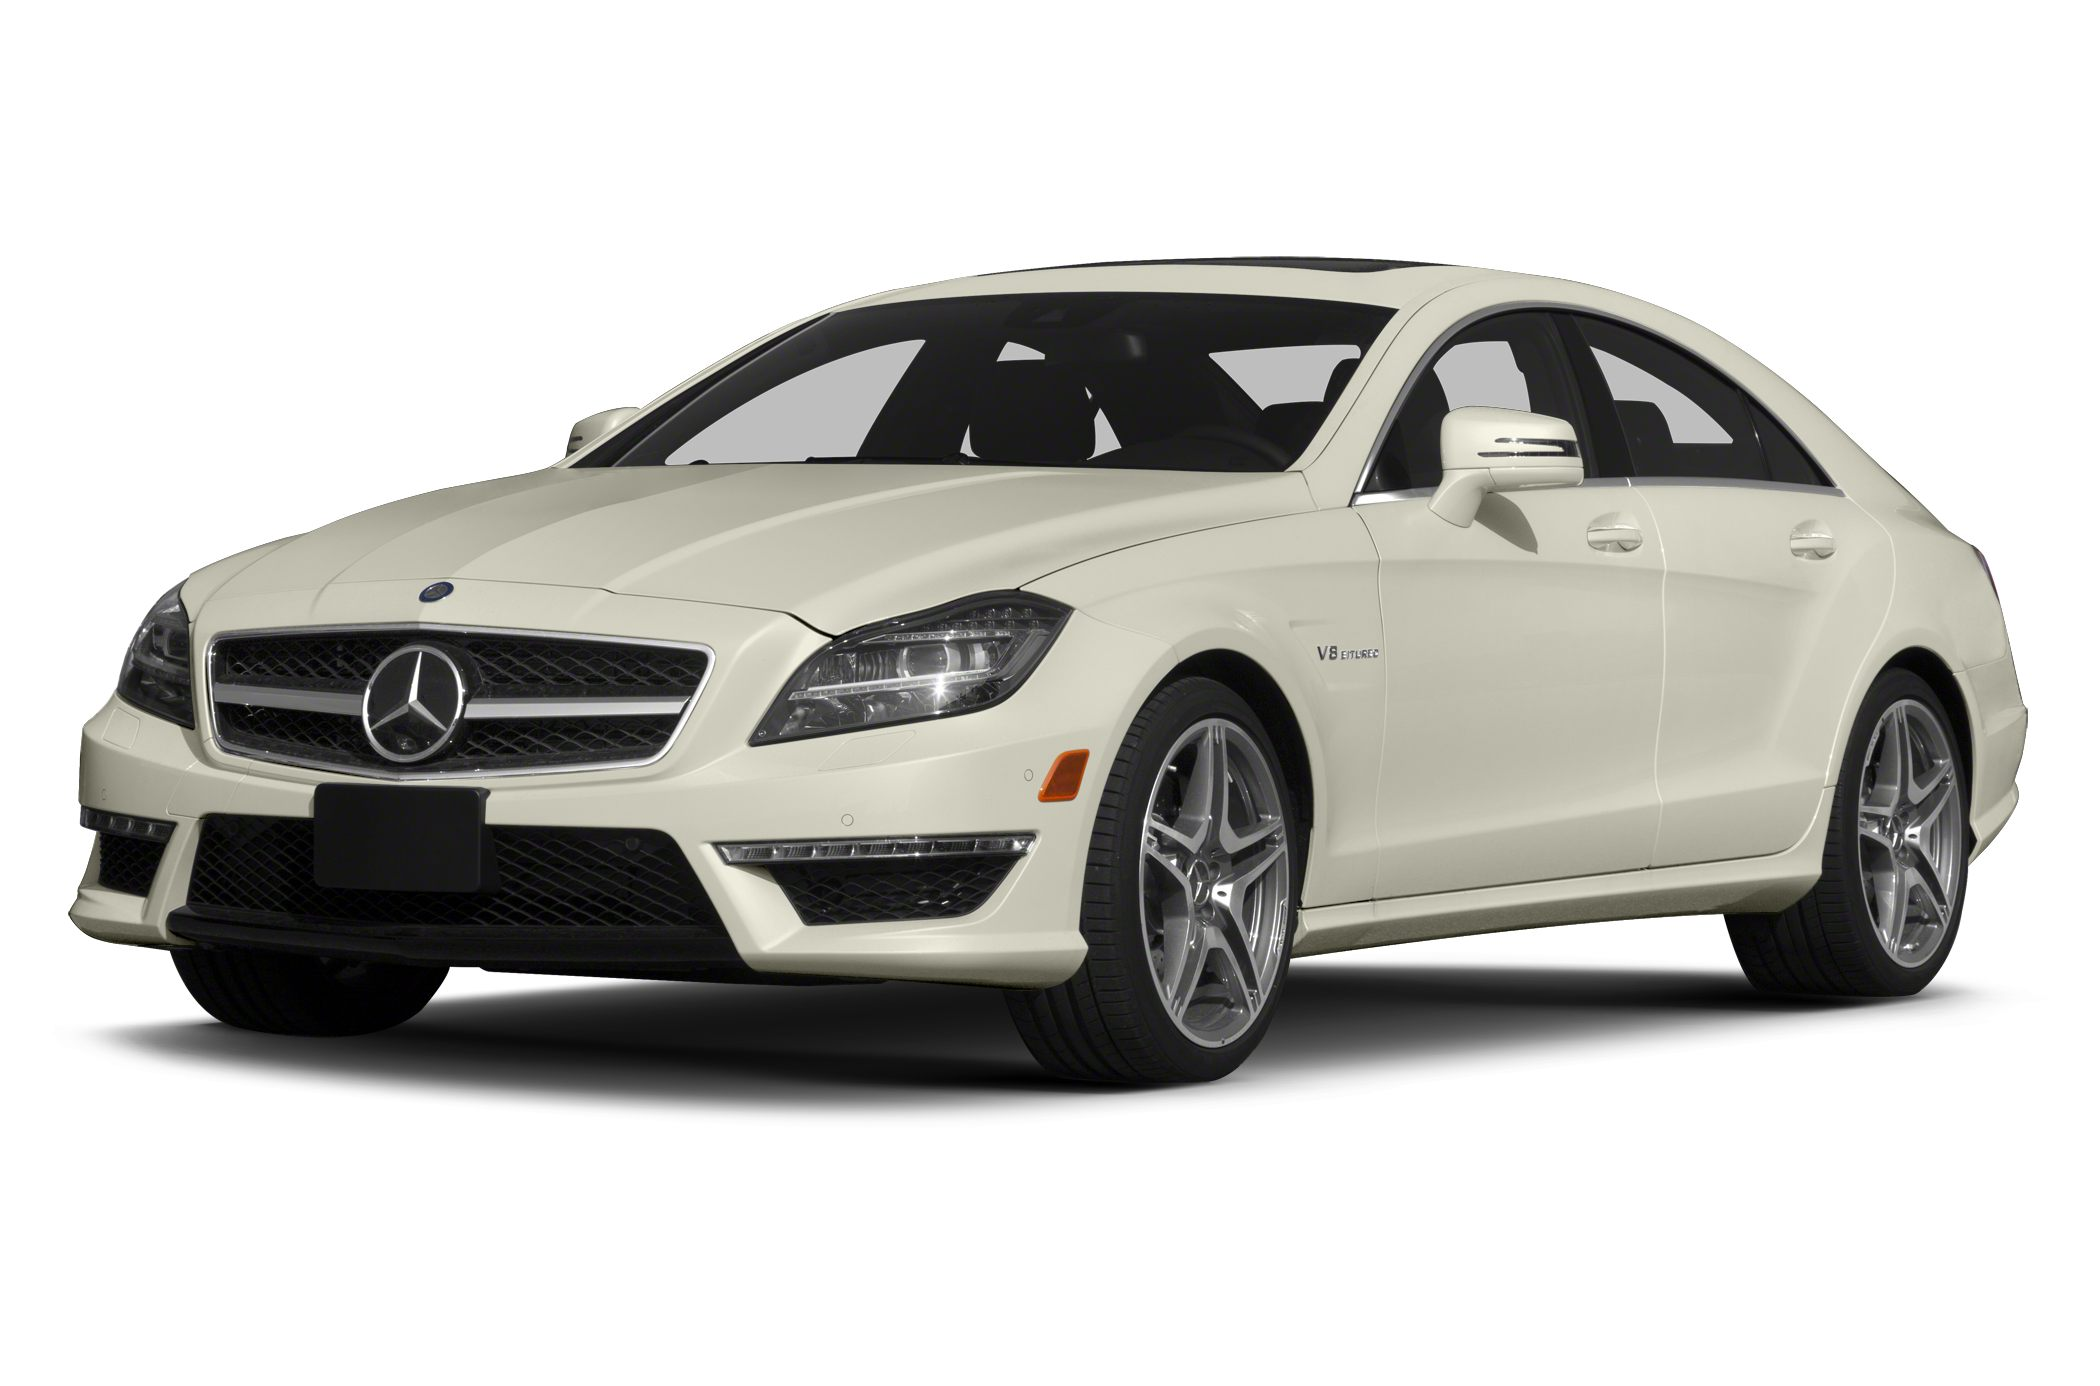 2013 Mercedes Benz Cls Class Base 63 Amg 4dr Sedan Pricing And 2008 550 Wide Kit Options